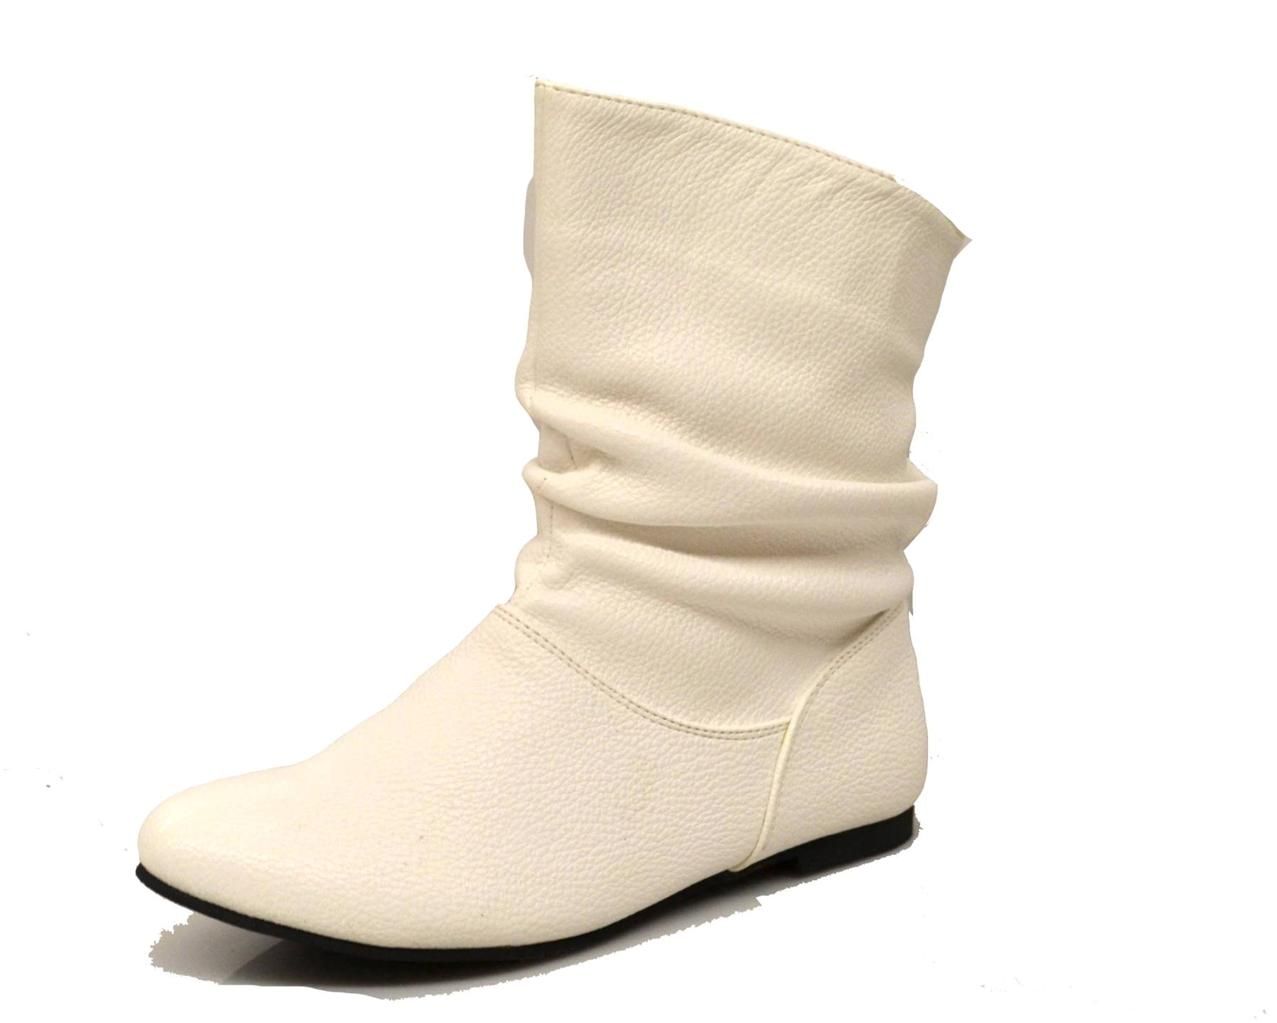 27 Model Womens Pull On Ankle Boots Sobatapkcom